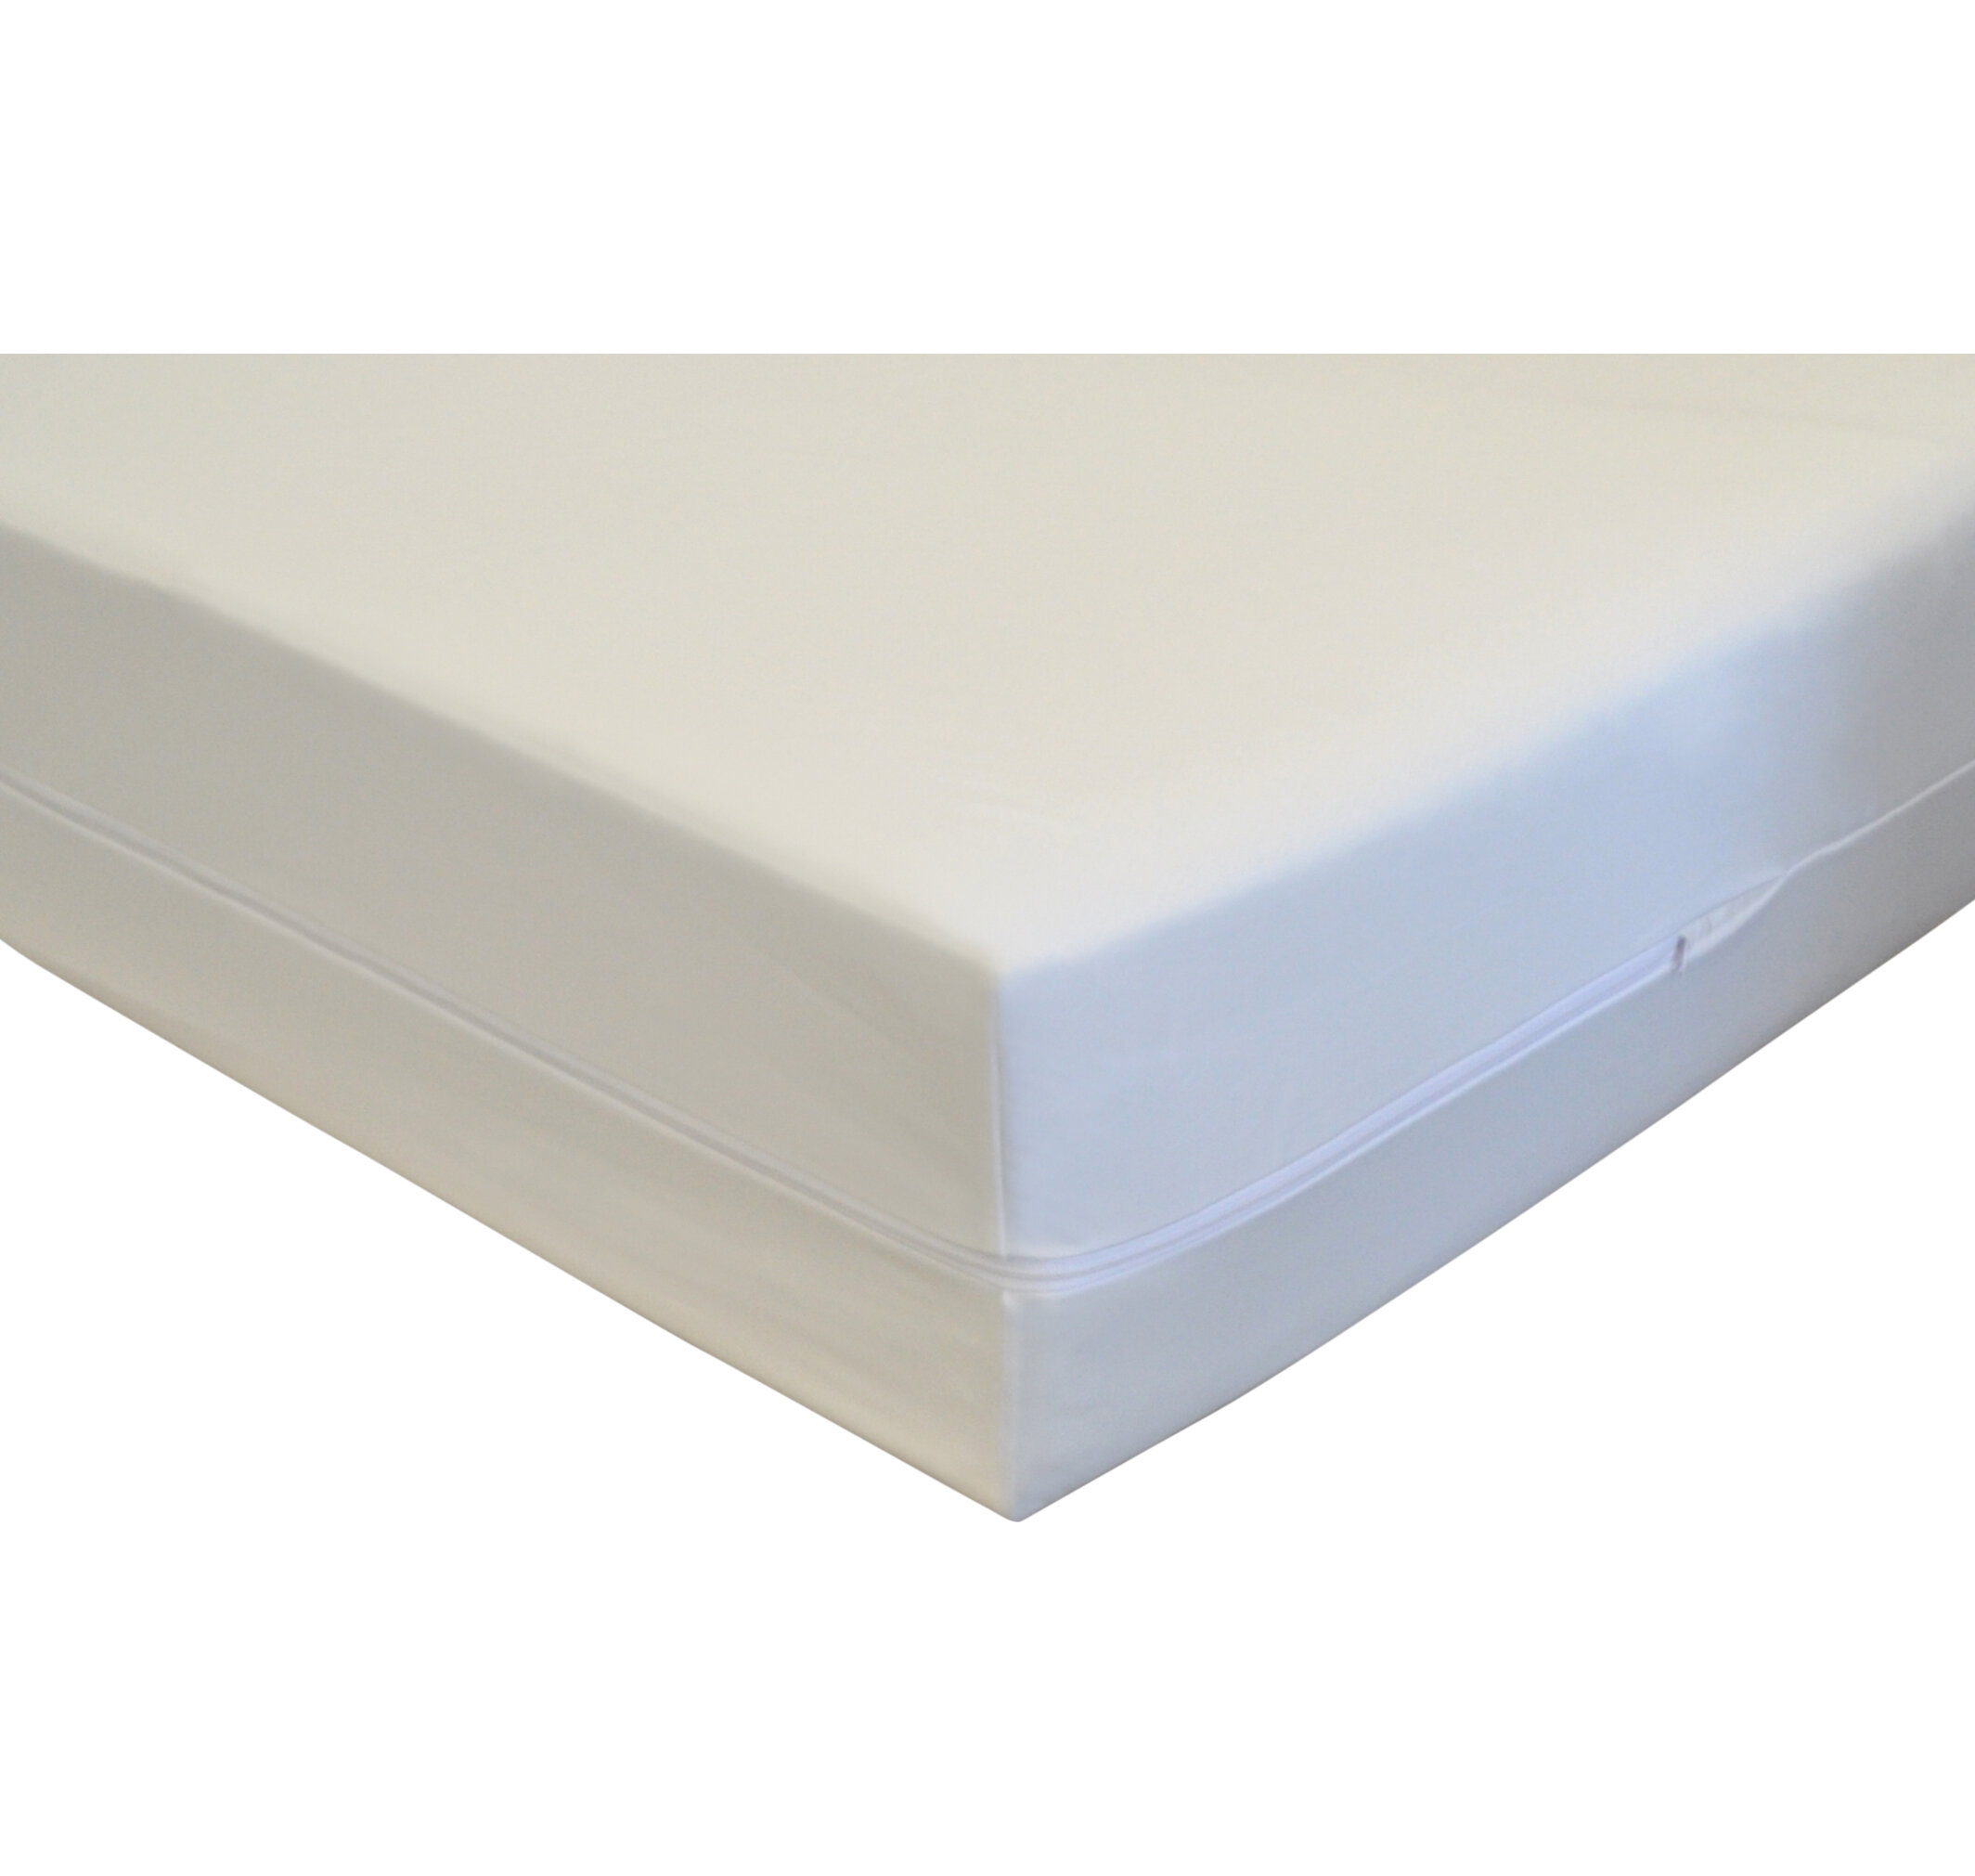 inc vinyl fiberlinks protector textiles mattress priva king product waterproof hhc